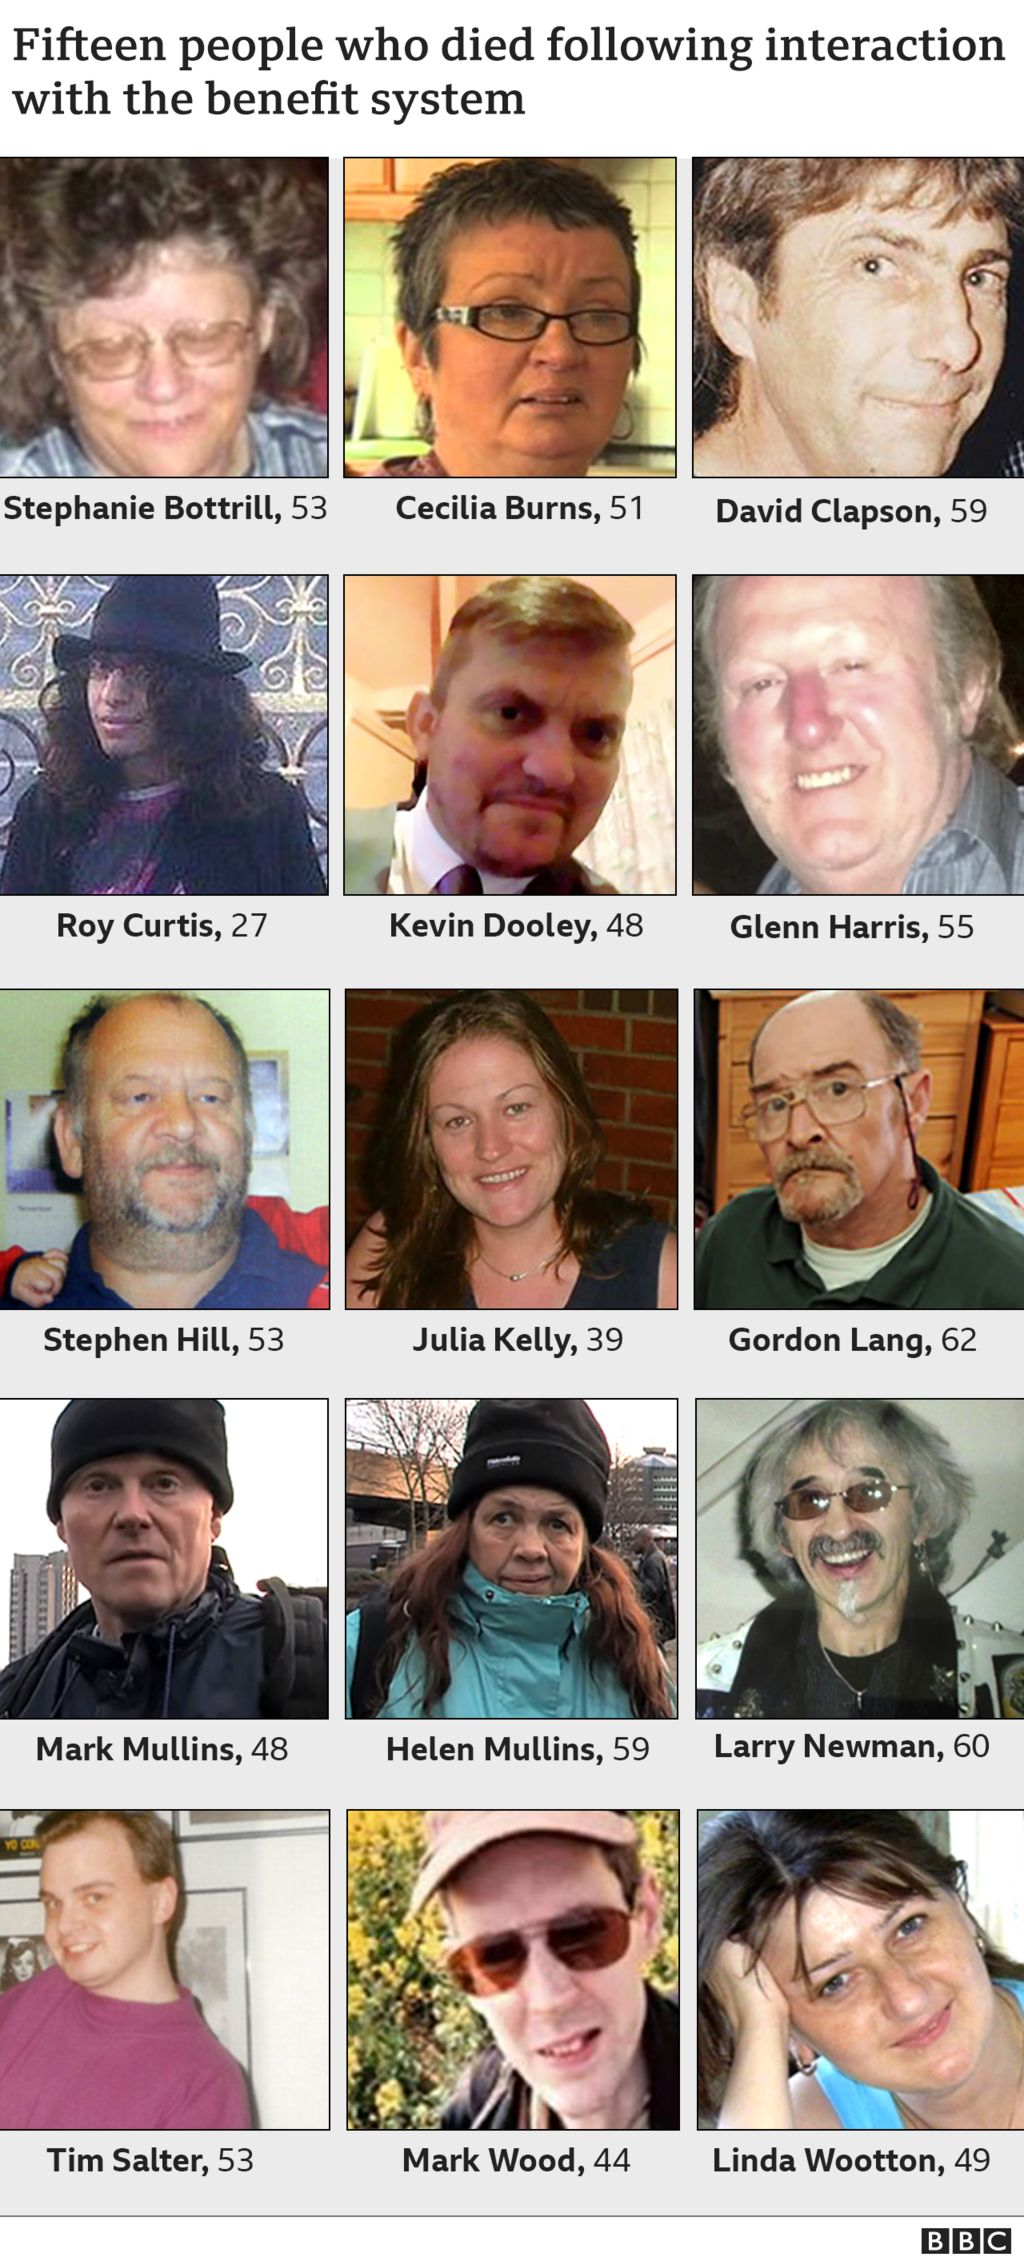 Photos of 15 people who died following interaction with the benefit system